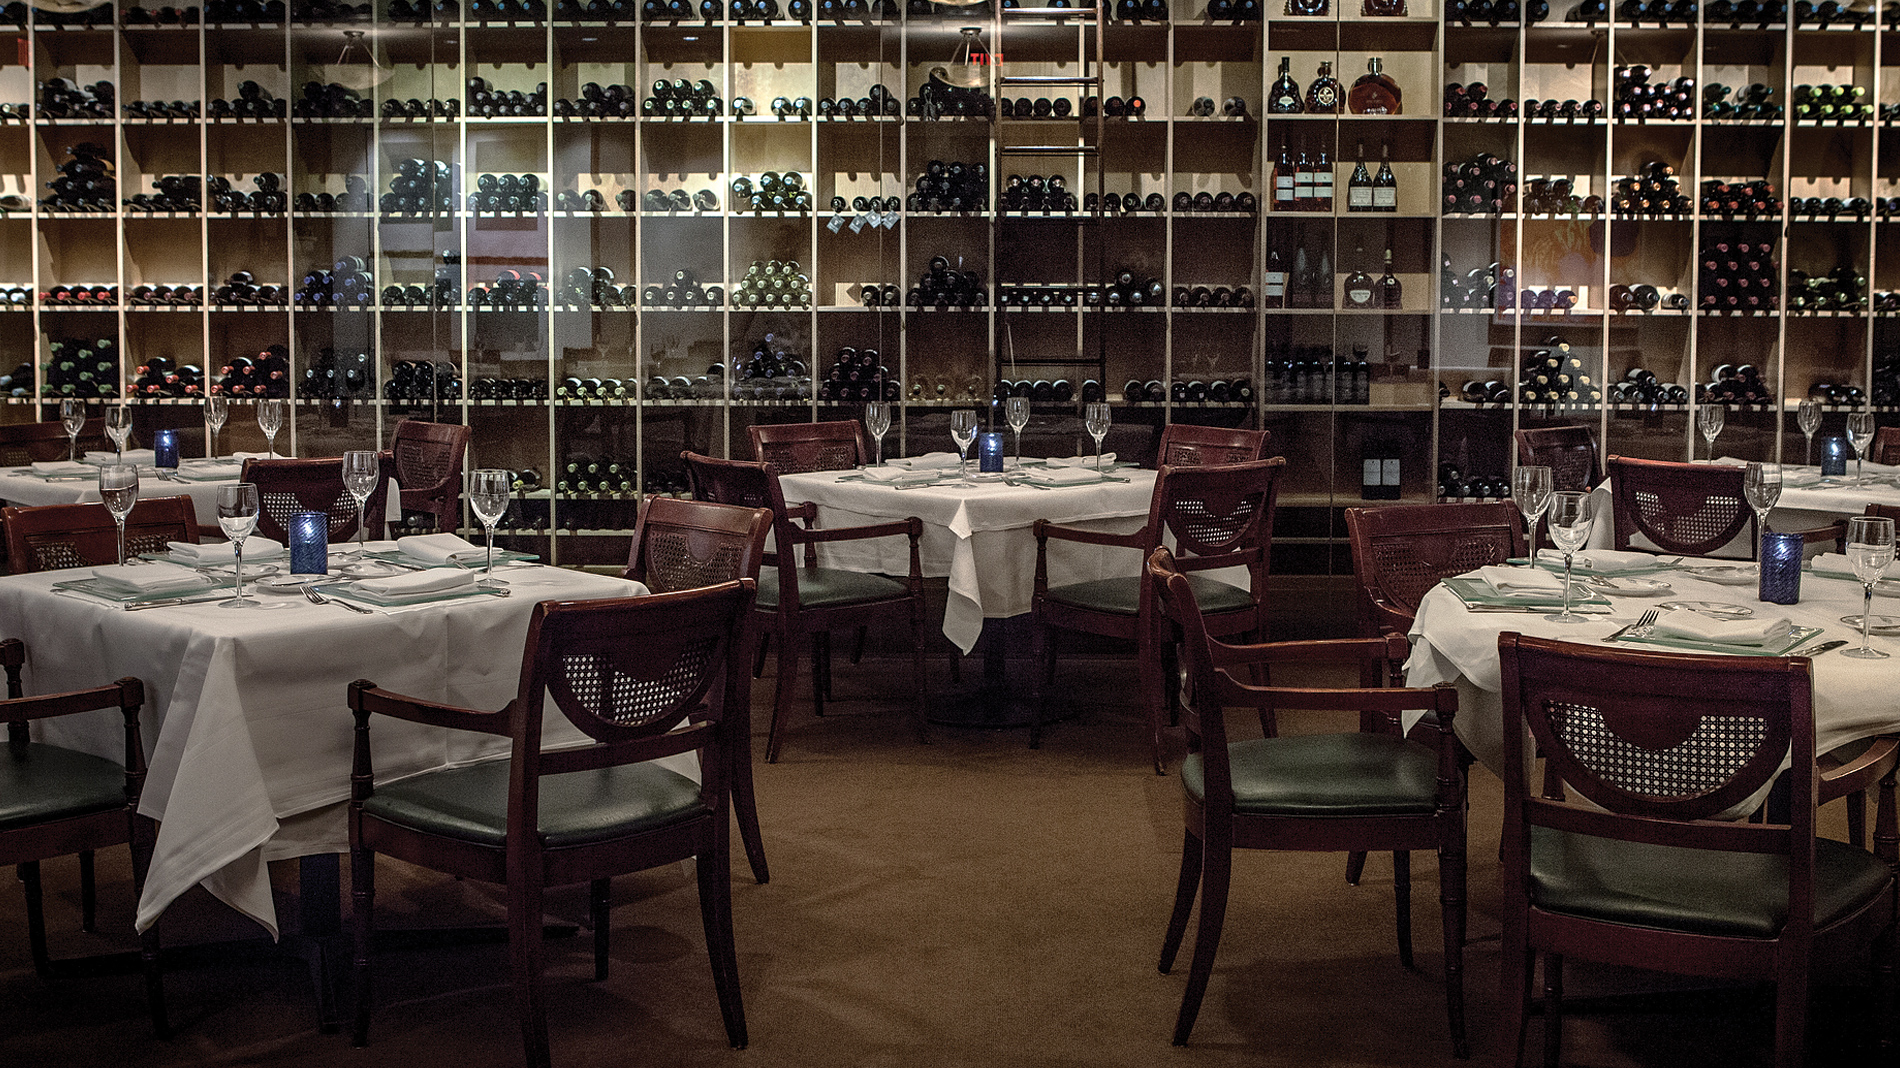 the dining room at Tony's in downtown St. Louis, Missouri